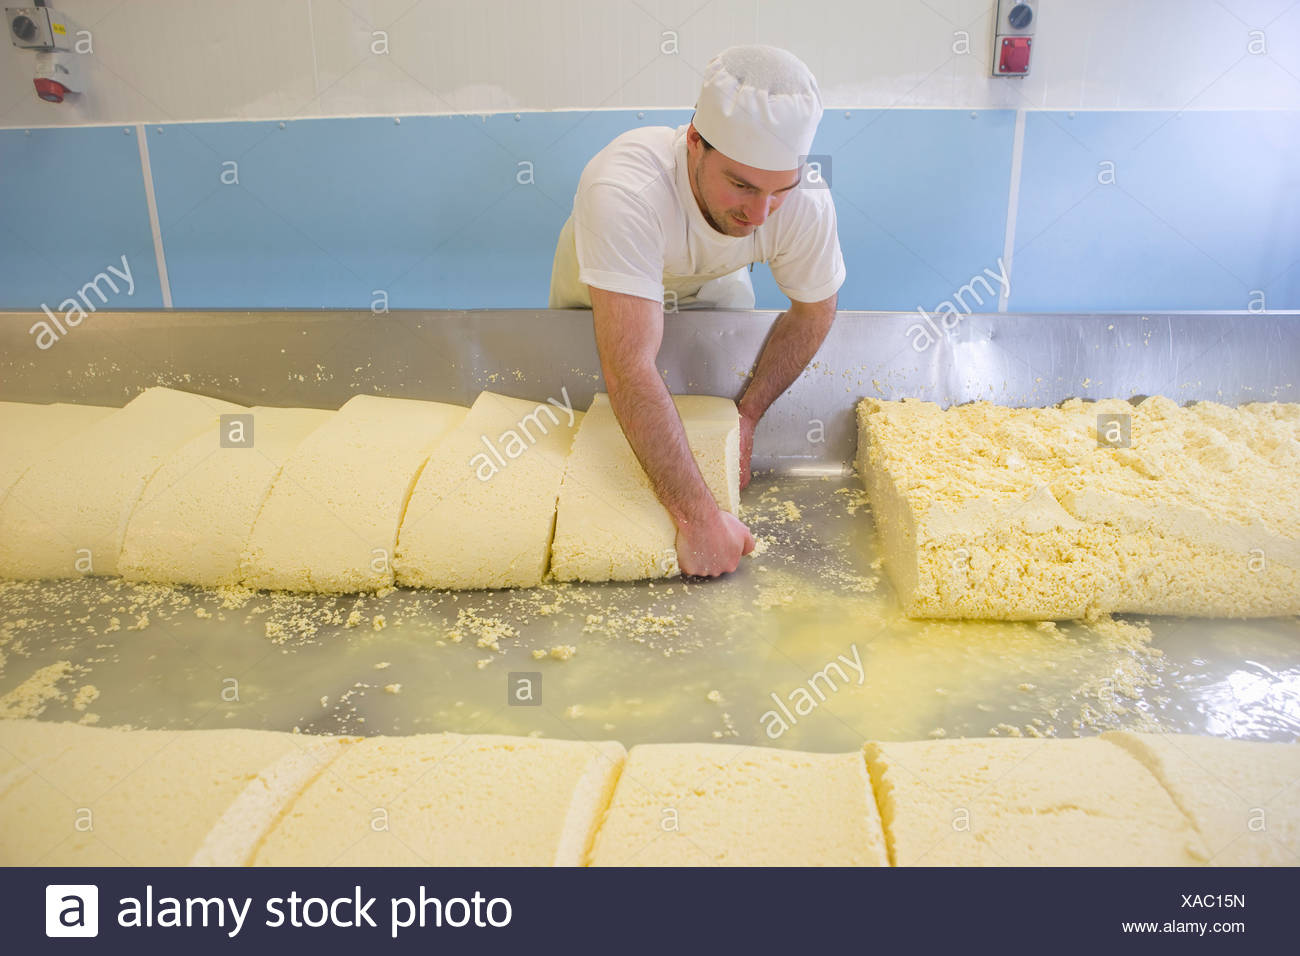 Cheddaring Stock Photos & Cheddaring Stock Images - Alamy